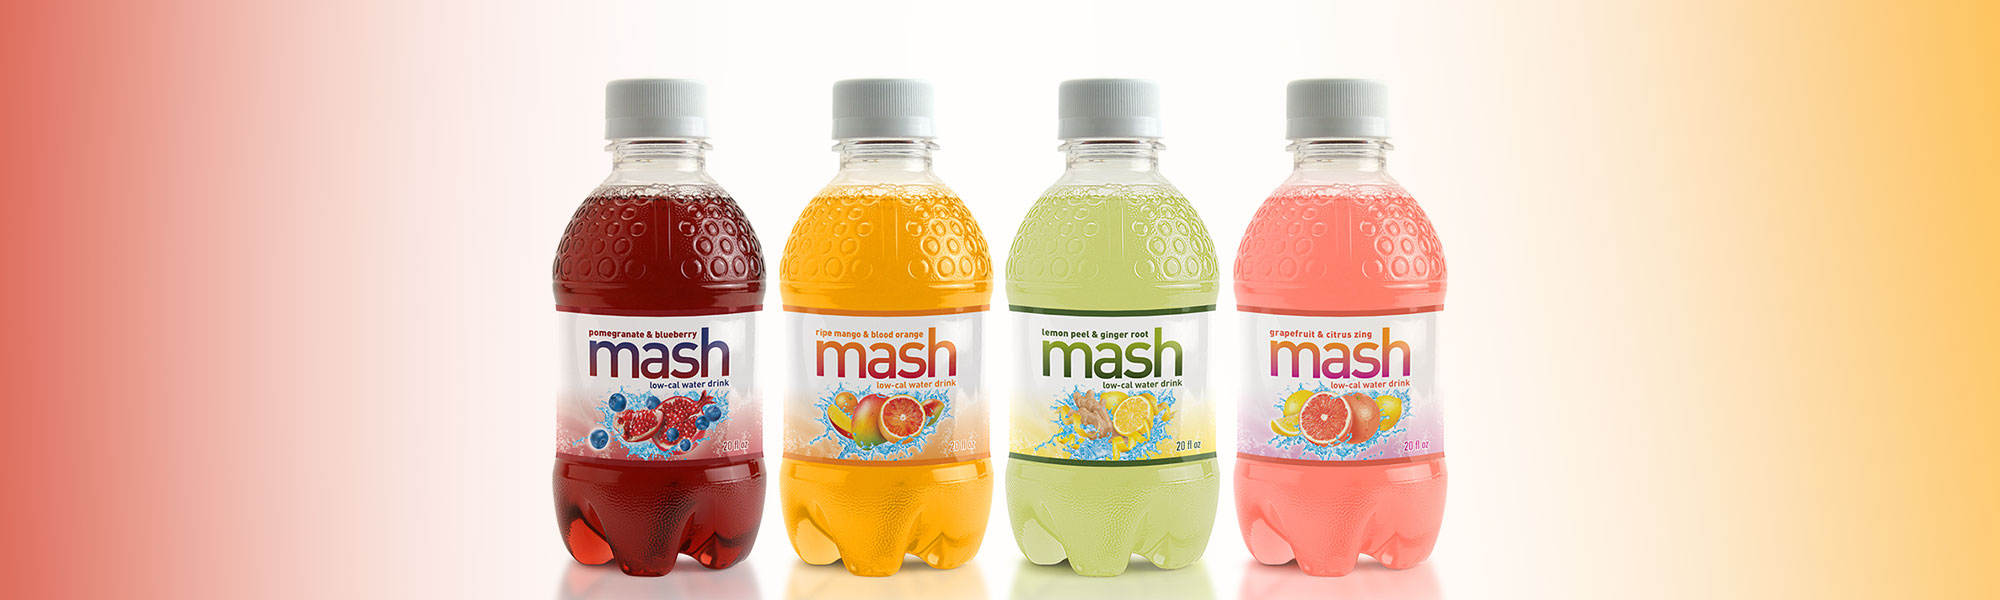 Mash low calorie water drink